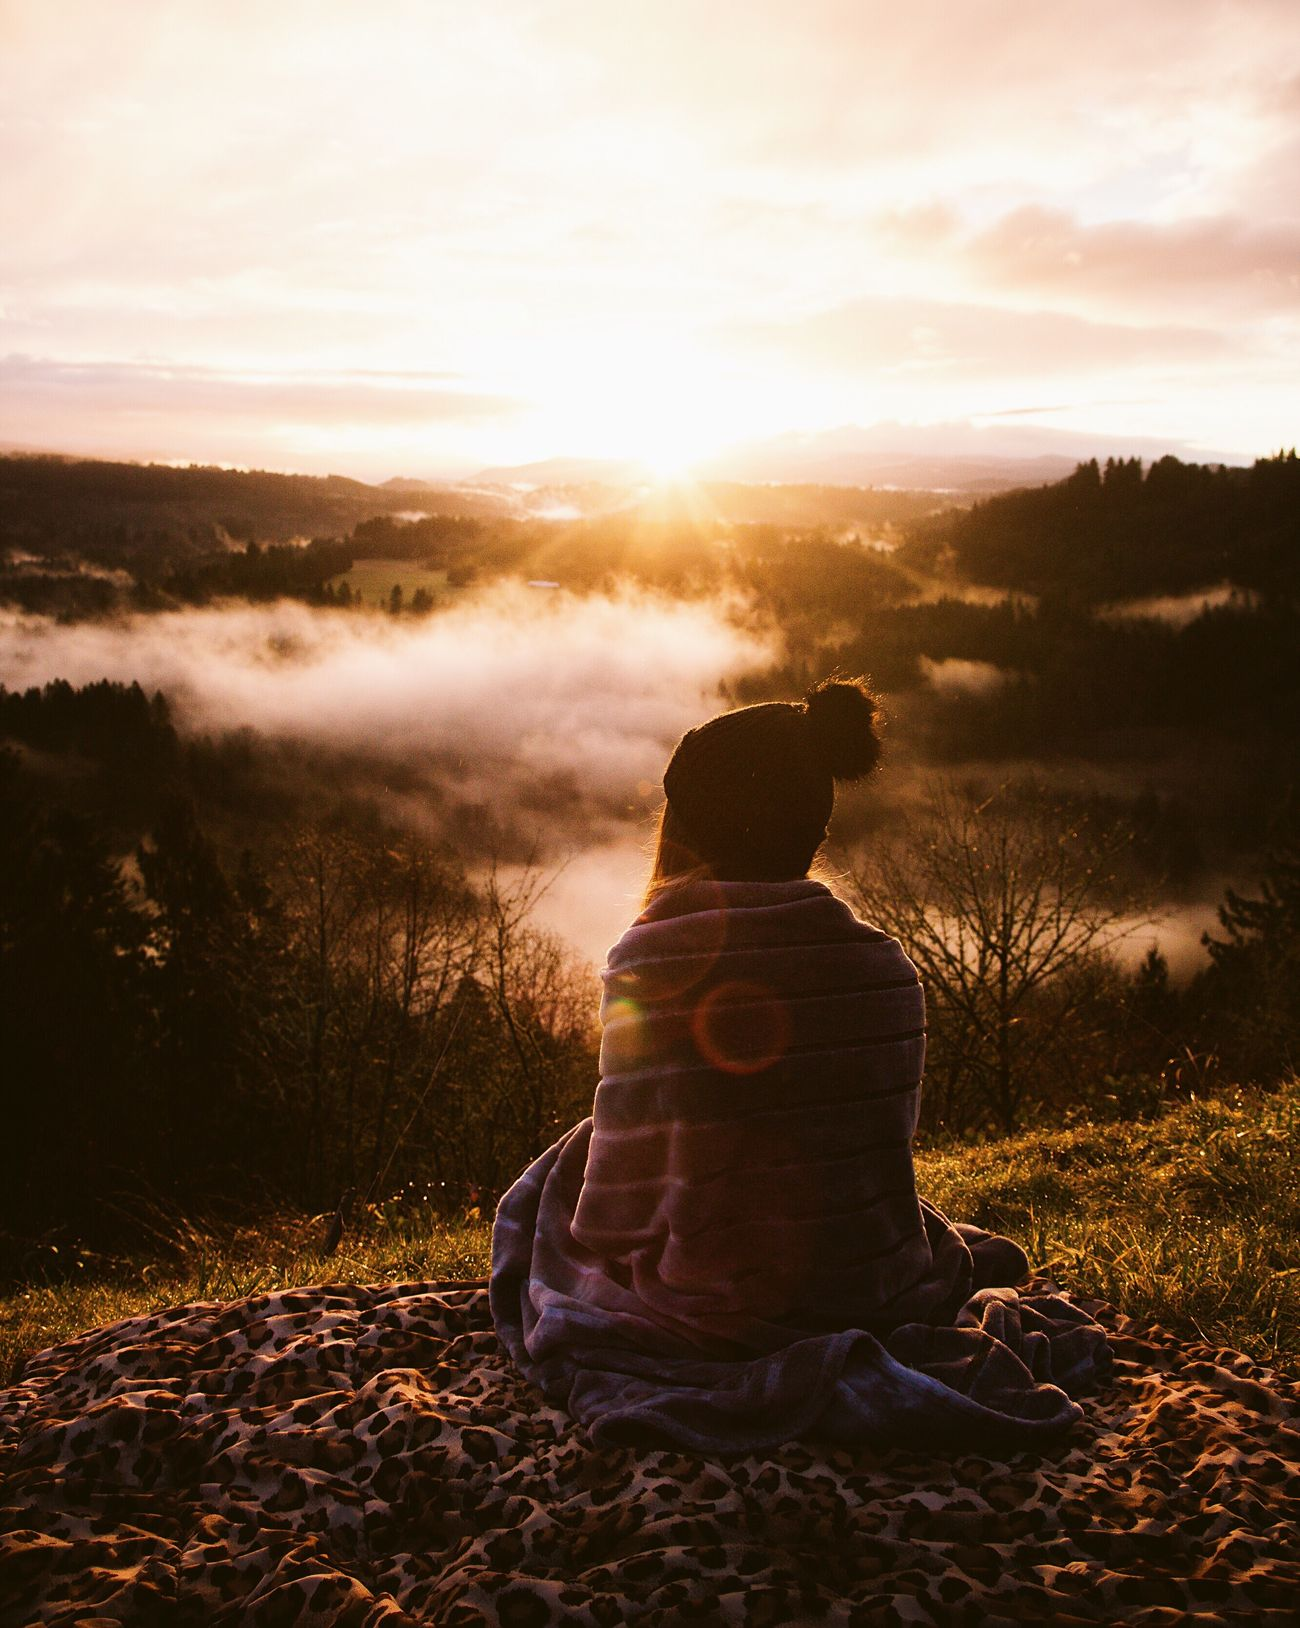 Epic sunrises. Rear View Sunset Sitting Full Length Sky One Person Nature Beauty In Nature Relaxation Real People Outdoors Cloud - Sky Scenics Warm Clothing People Adult Day